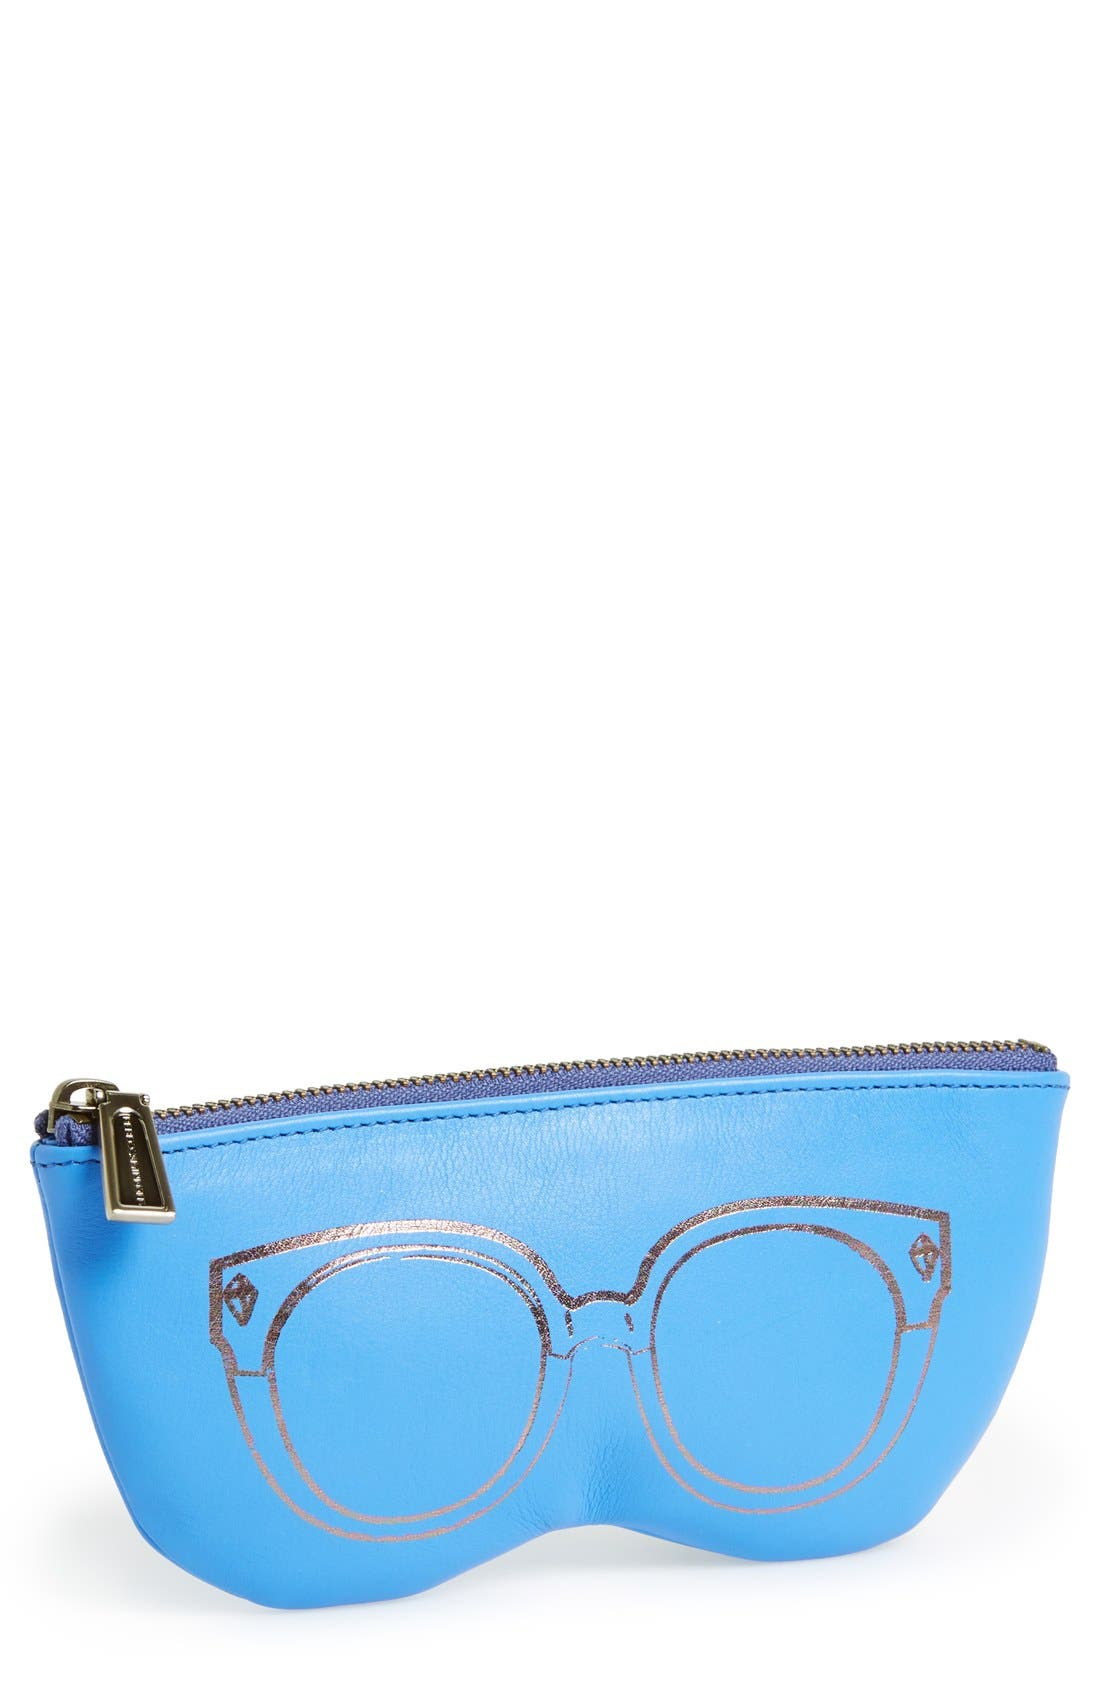 Alternate Image 1 Selected - Rebecca Minkoff Sunglasses Pouch